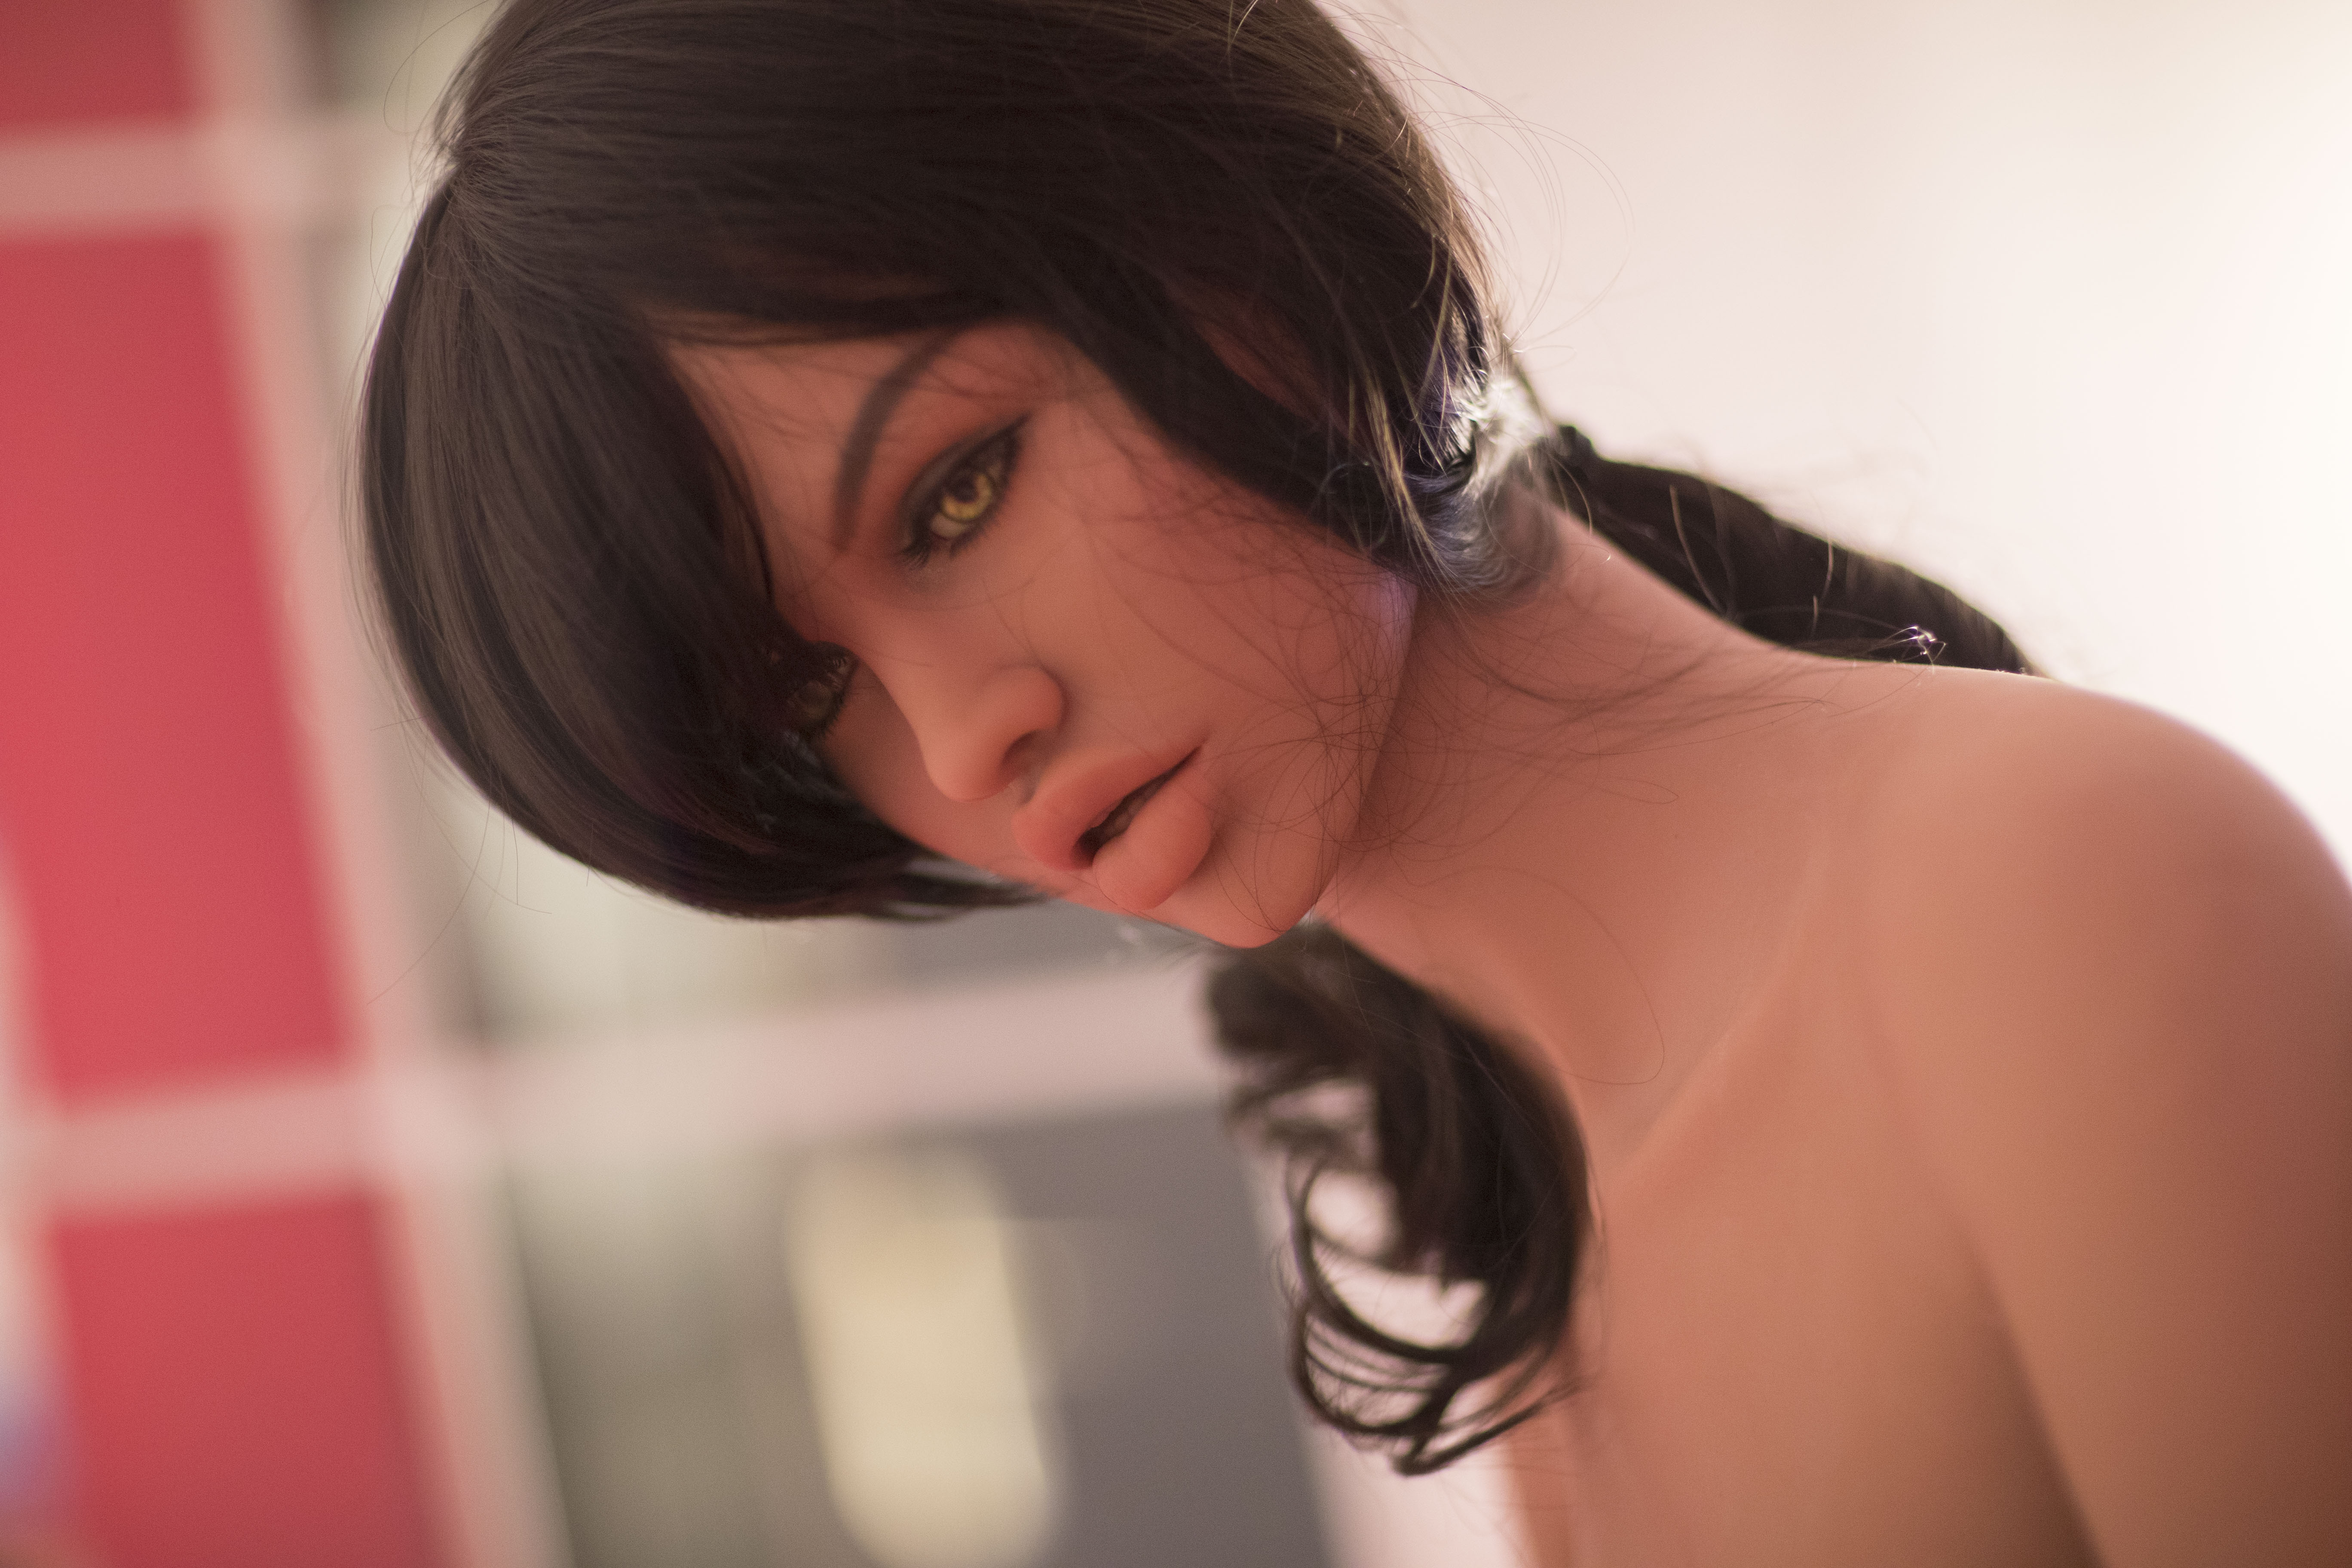 France's First brothel Featuring Sex Dolls Opens in Paris